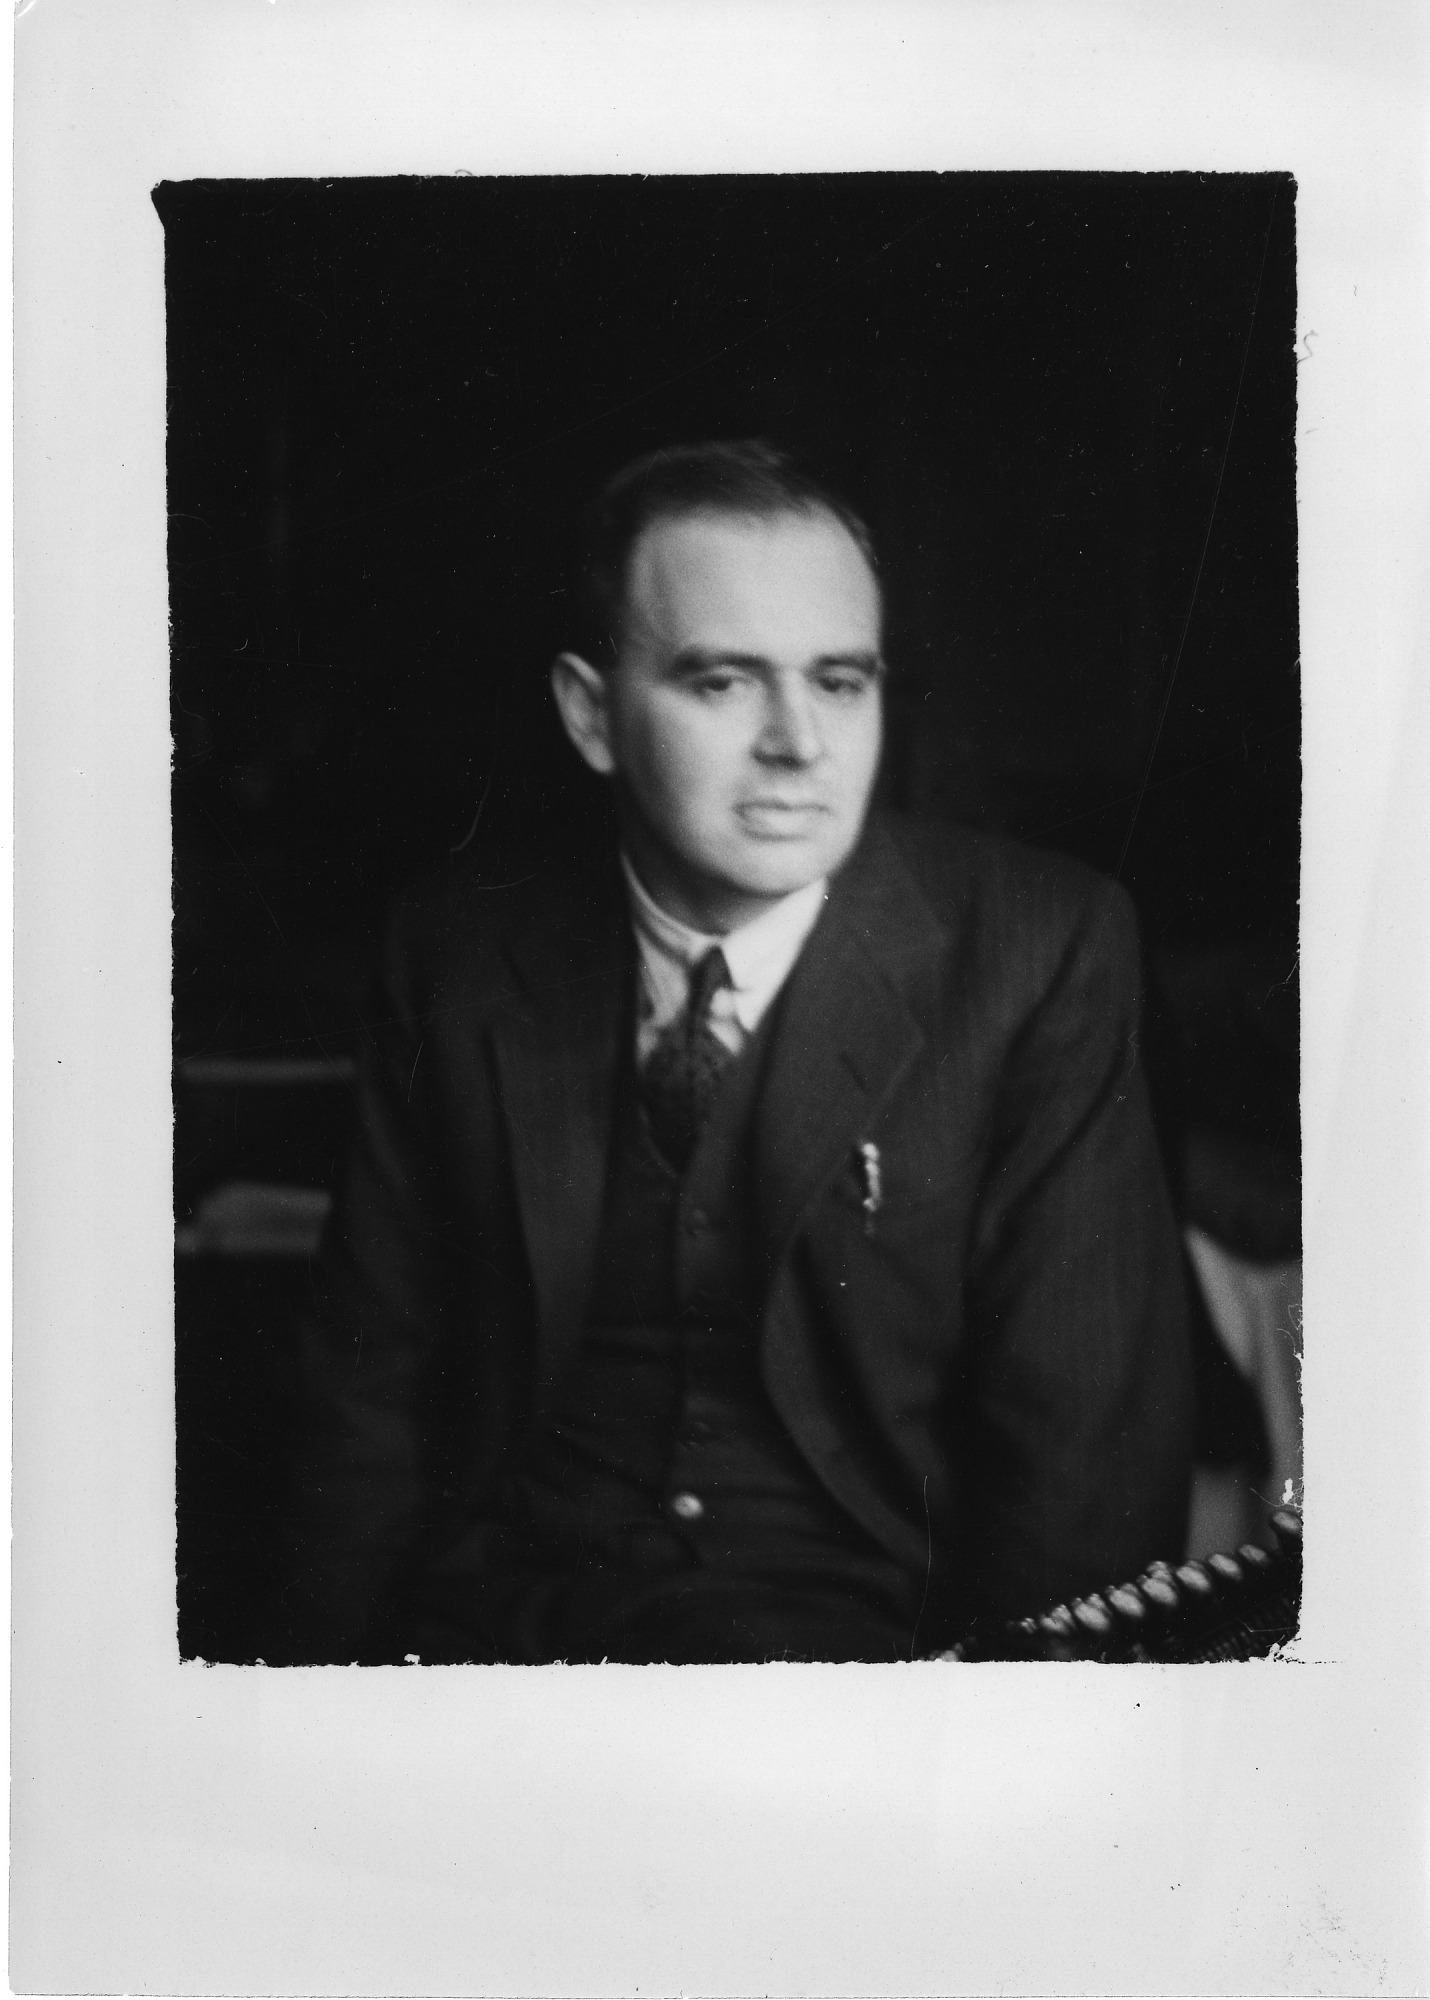 Donald Caley, 1935, Smithsonian Institution Archives, SIA Acc. 90-105 [SIA2008-0260].